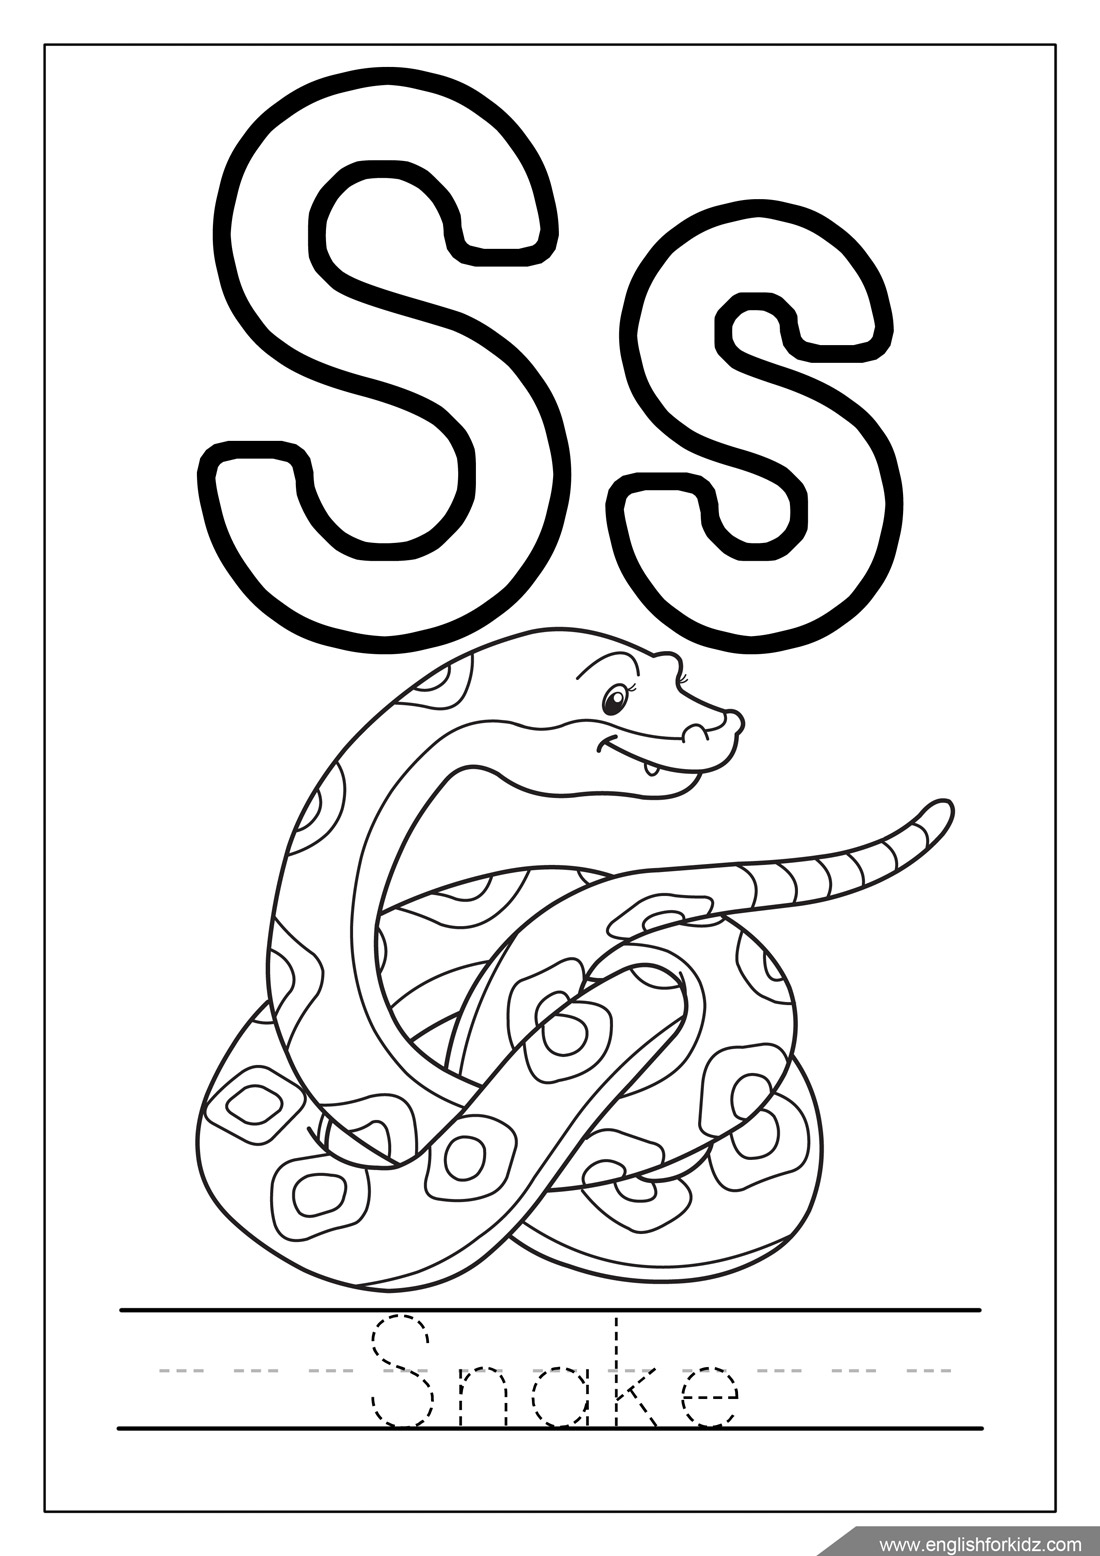 English For Kids Step By Step Alphabet Coloring Pages